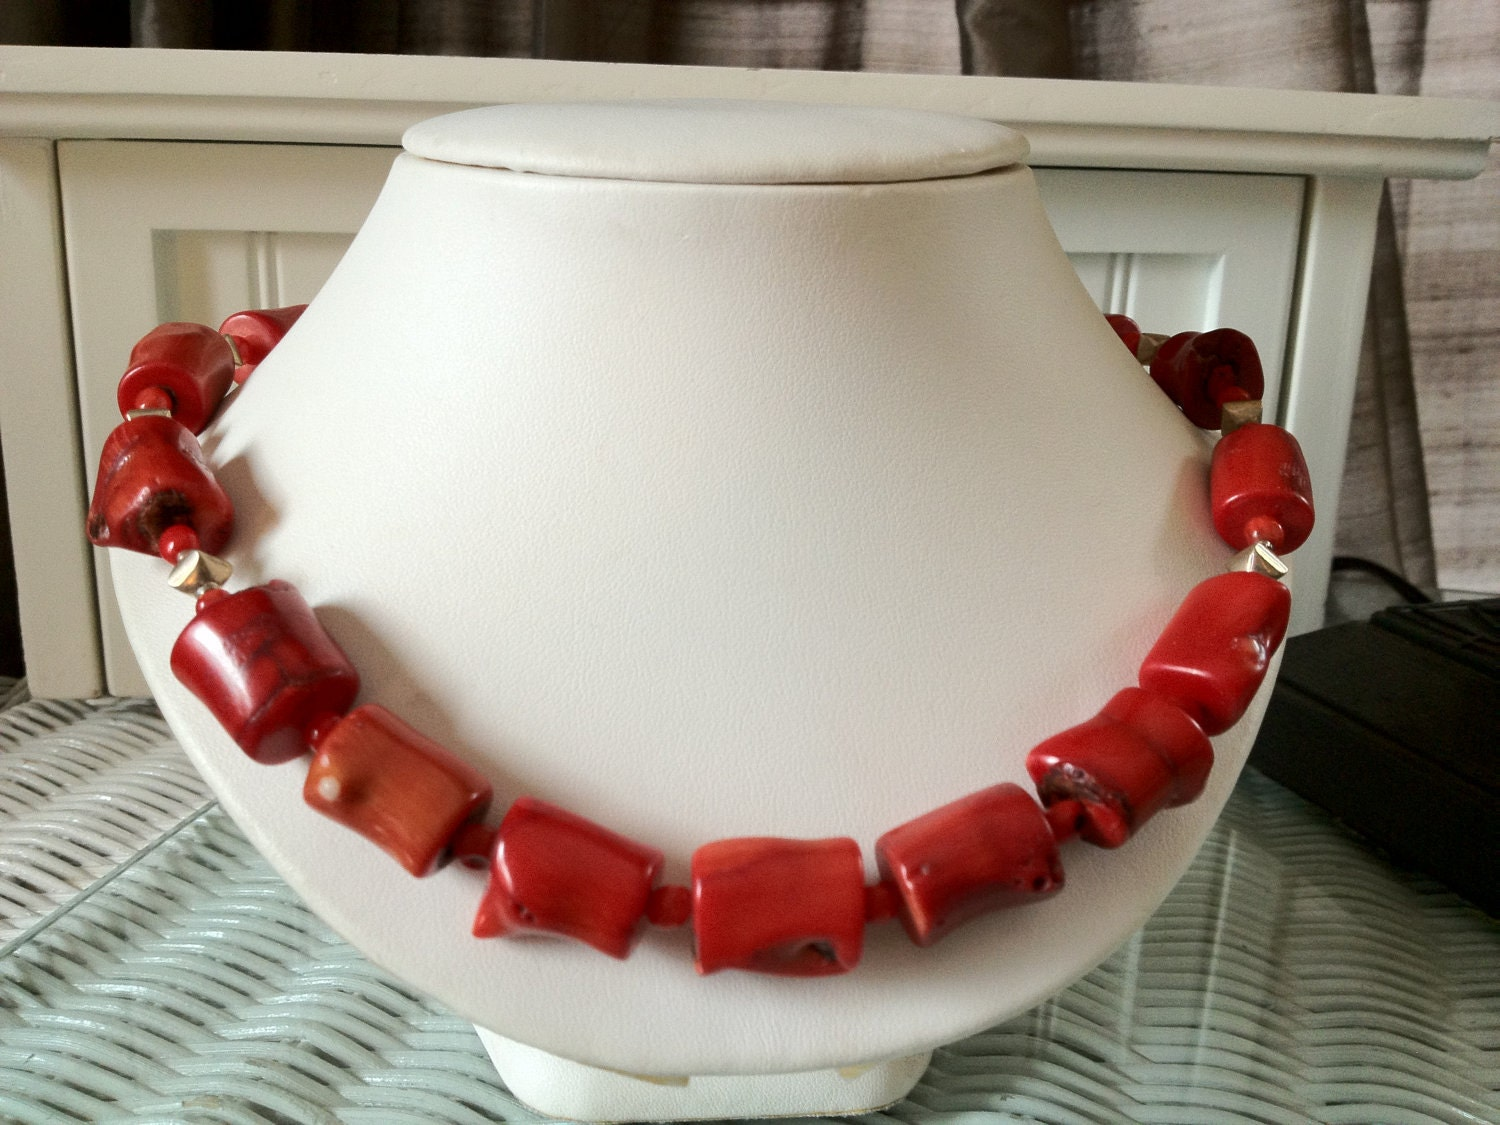 Sponge Coral Necklace with Sterling Silver Beads, Toggle, and Wire